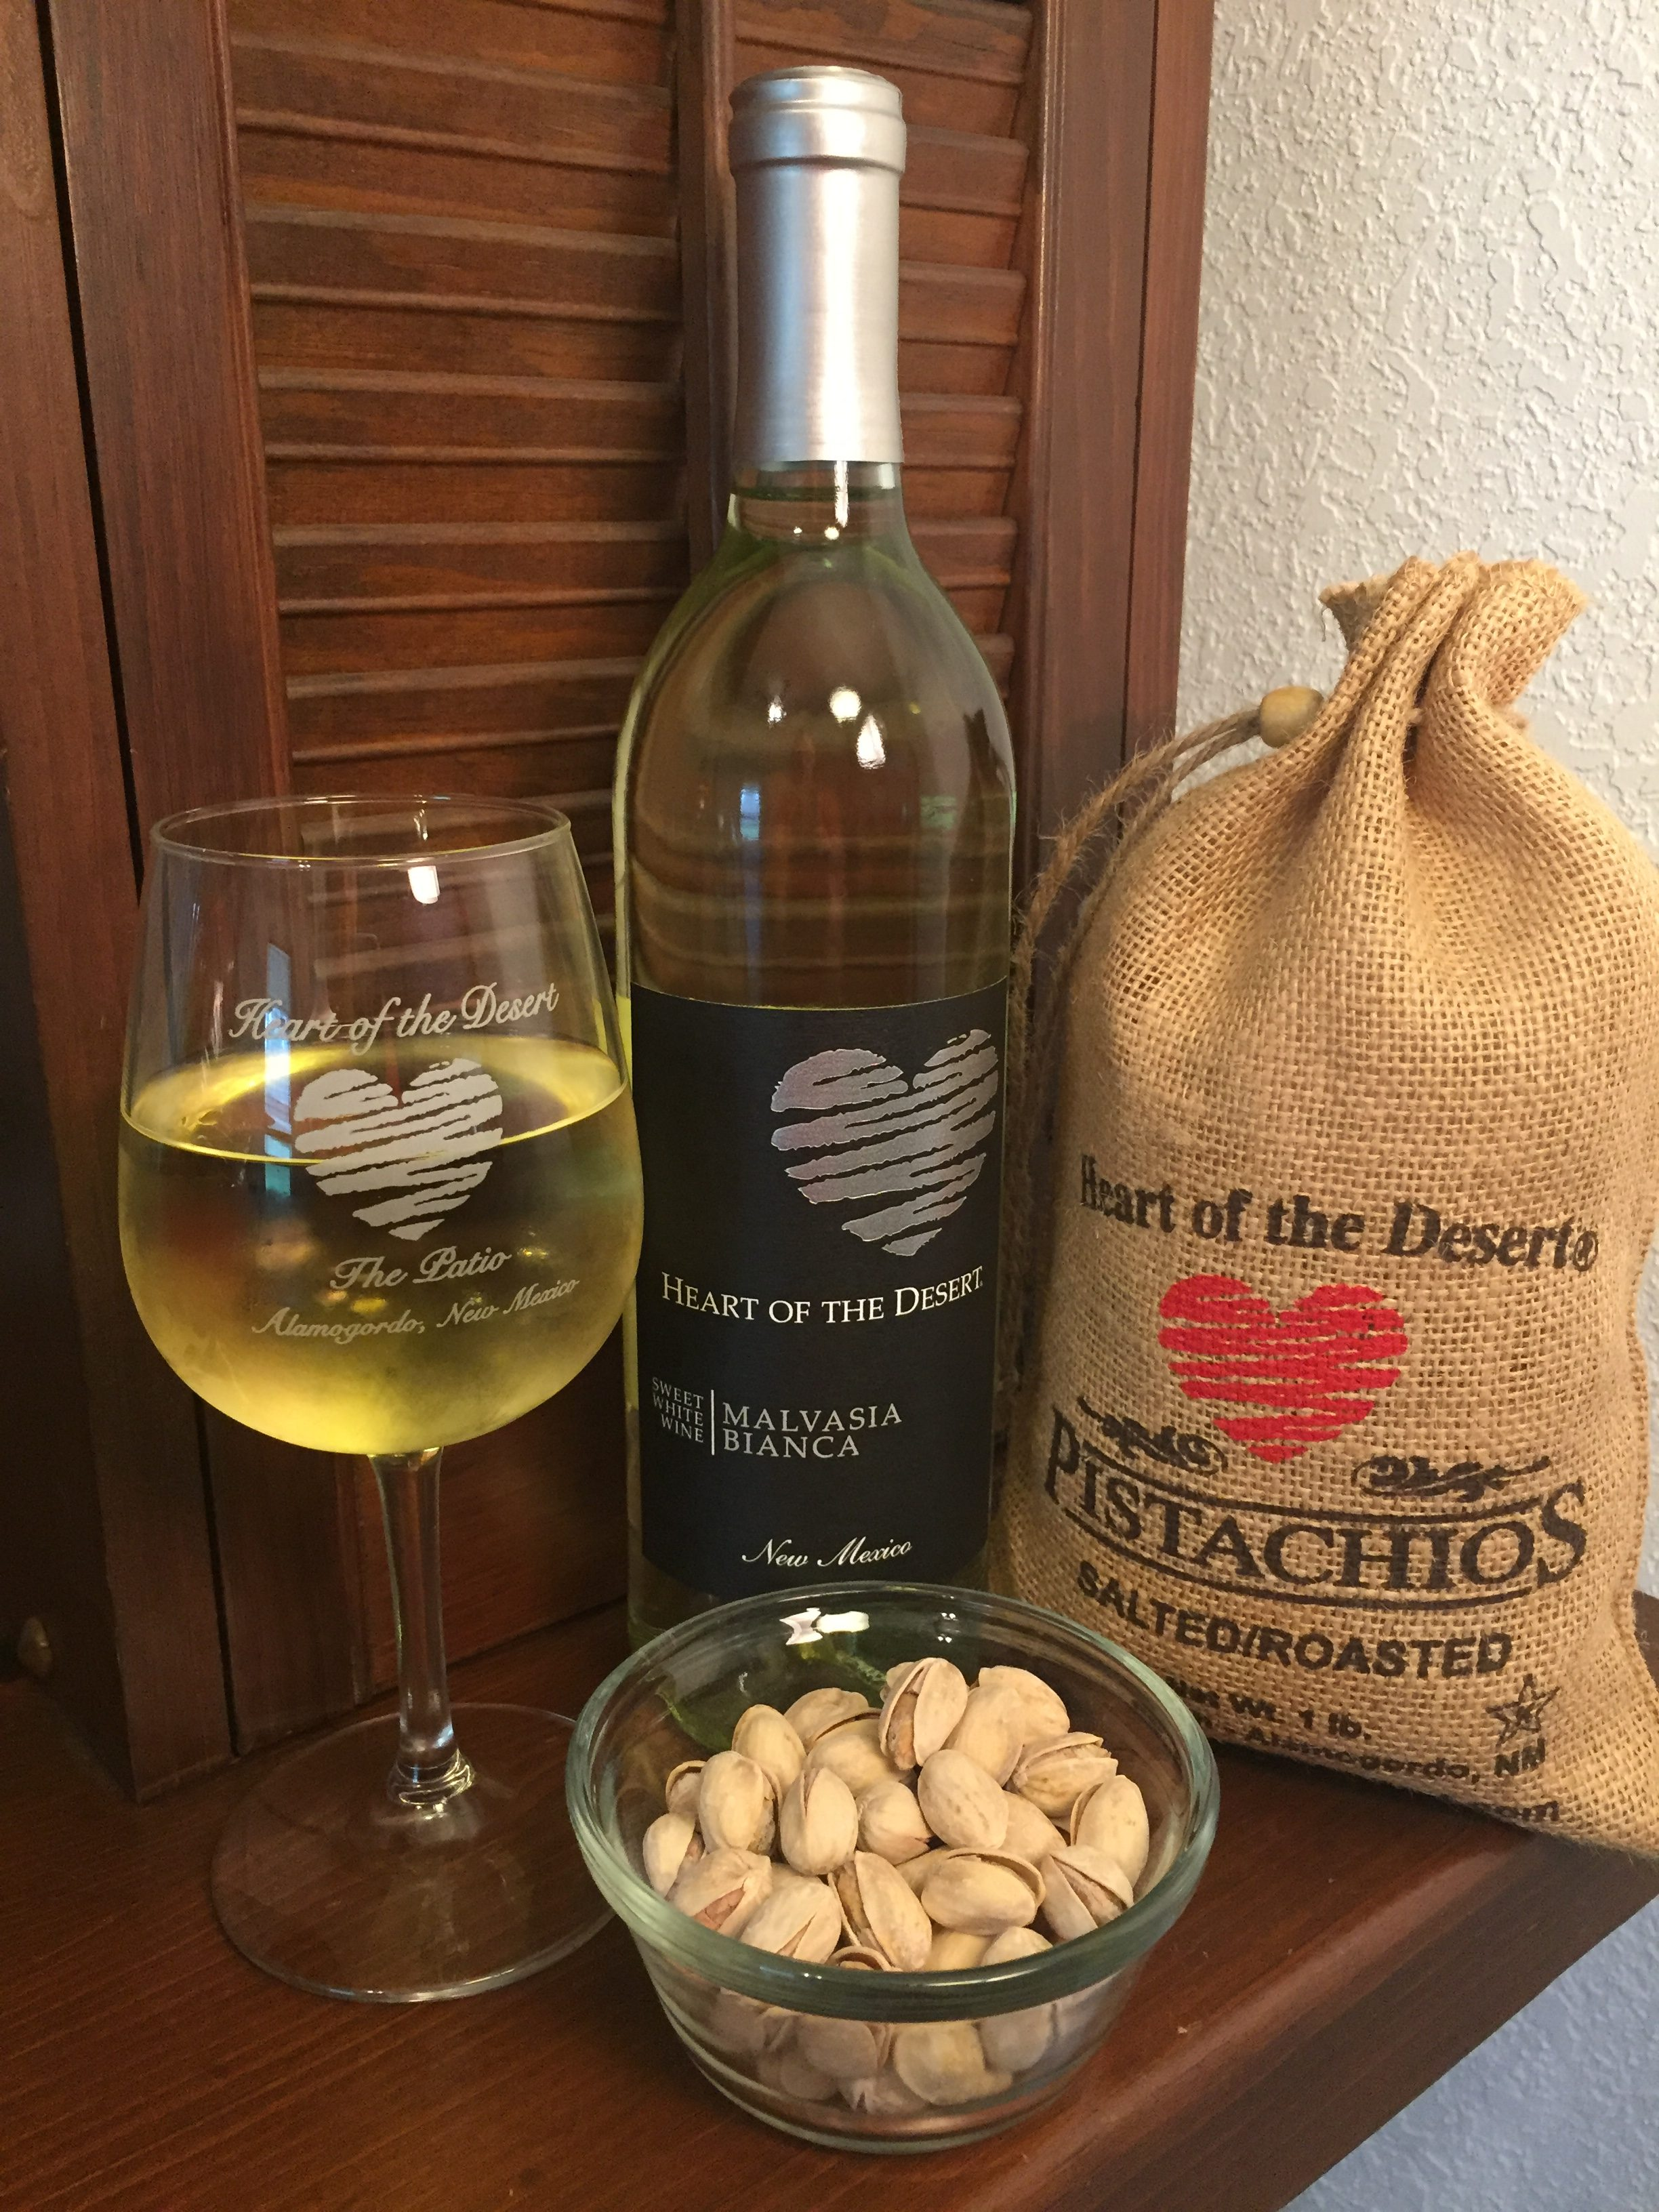 wine and nut pairings from Heart of the Desert Pistachios